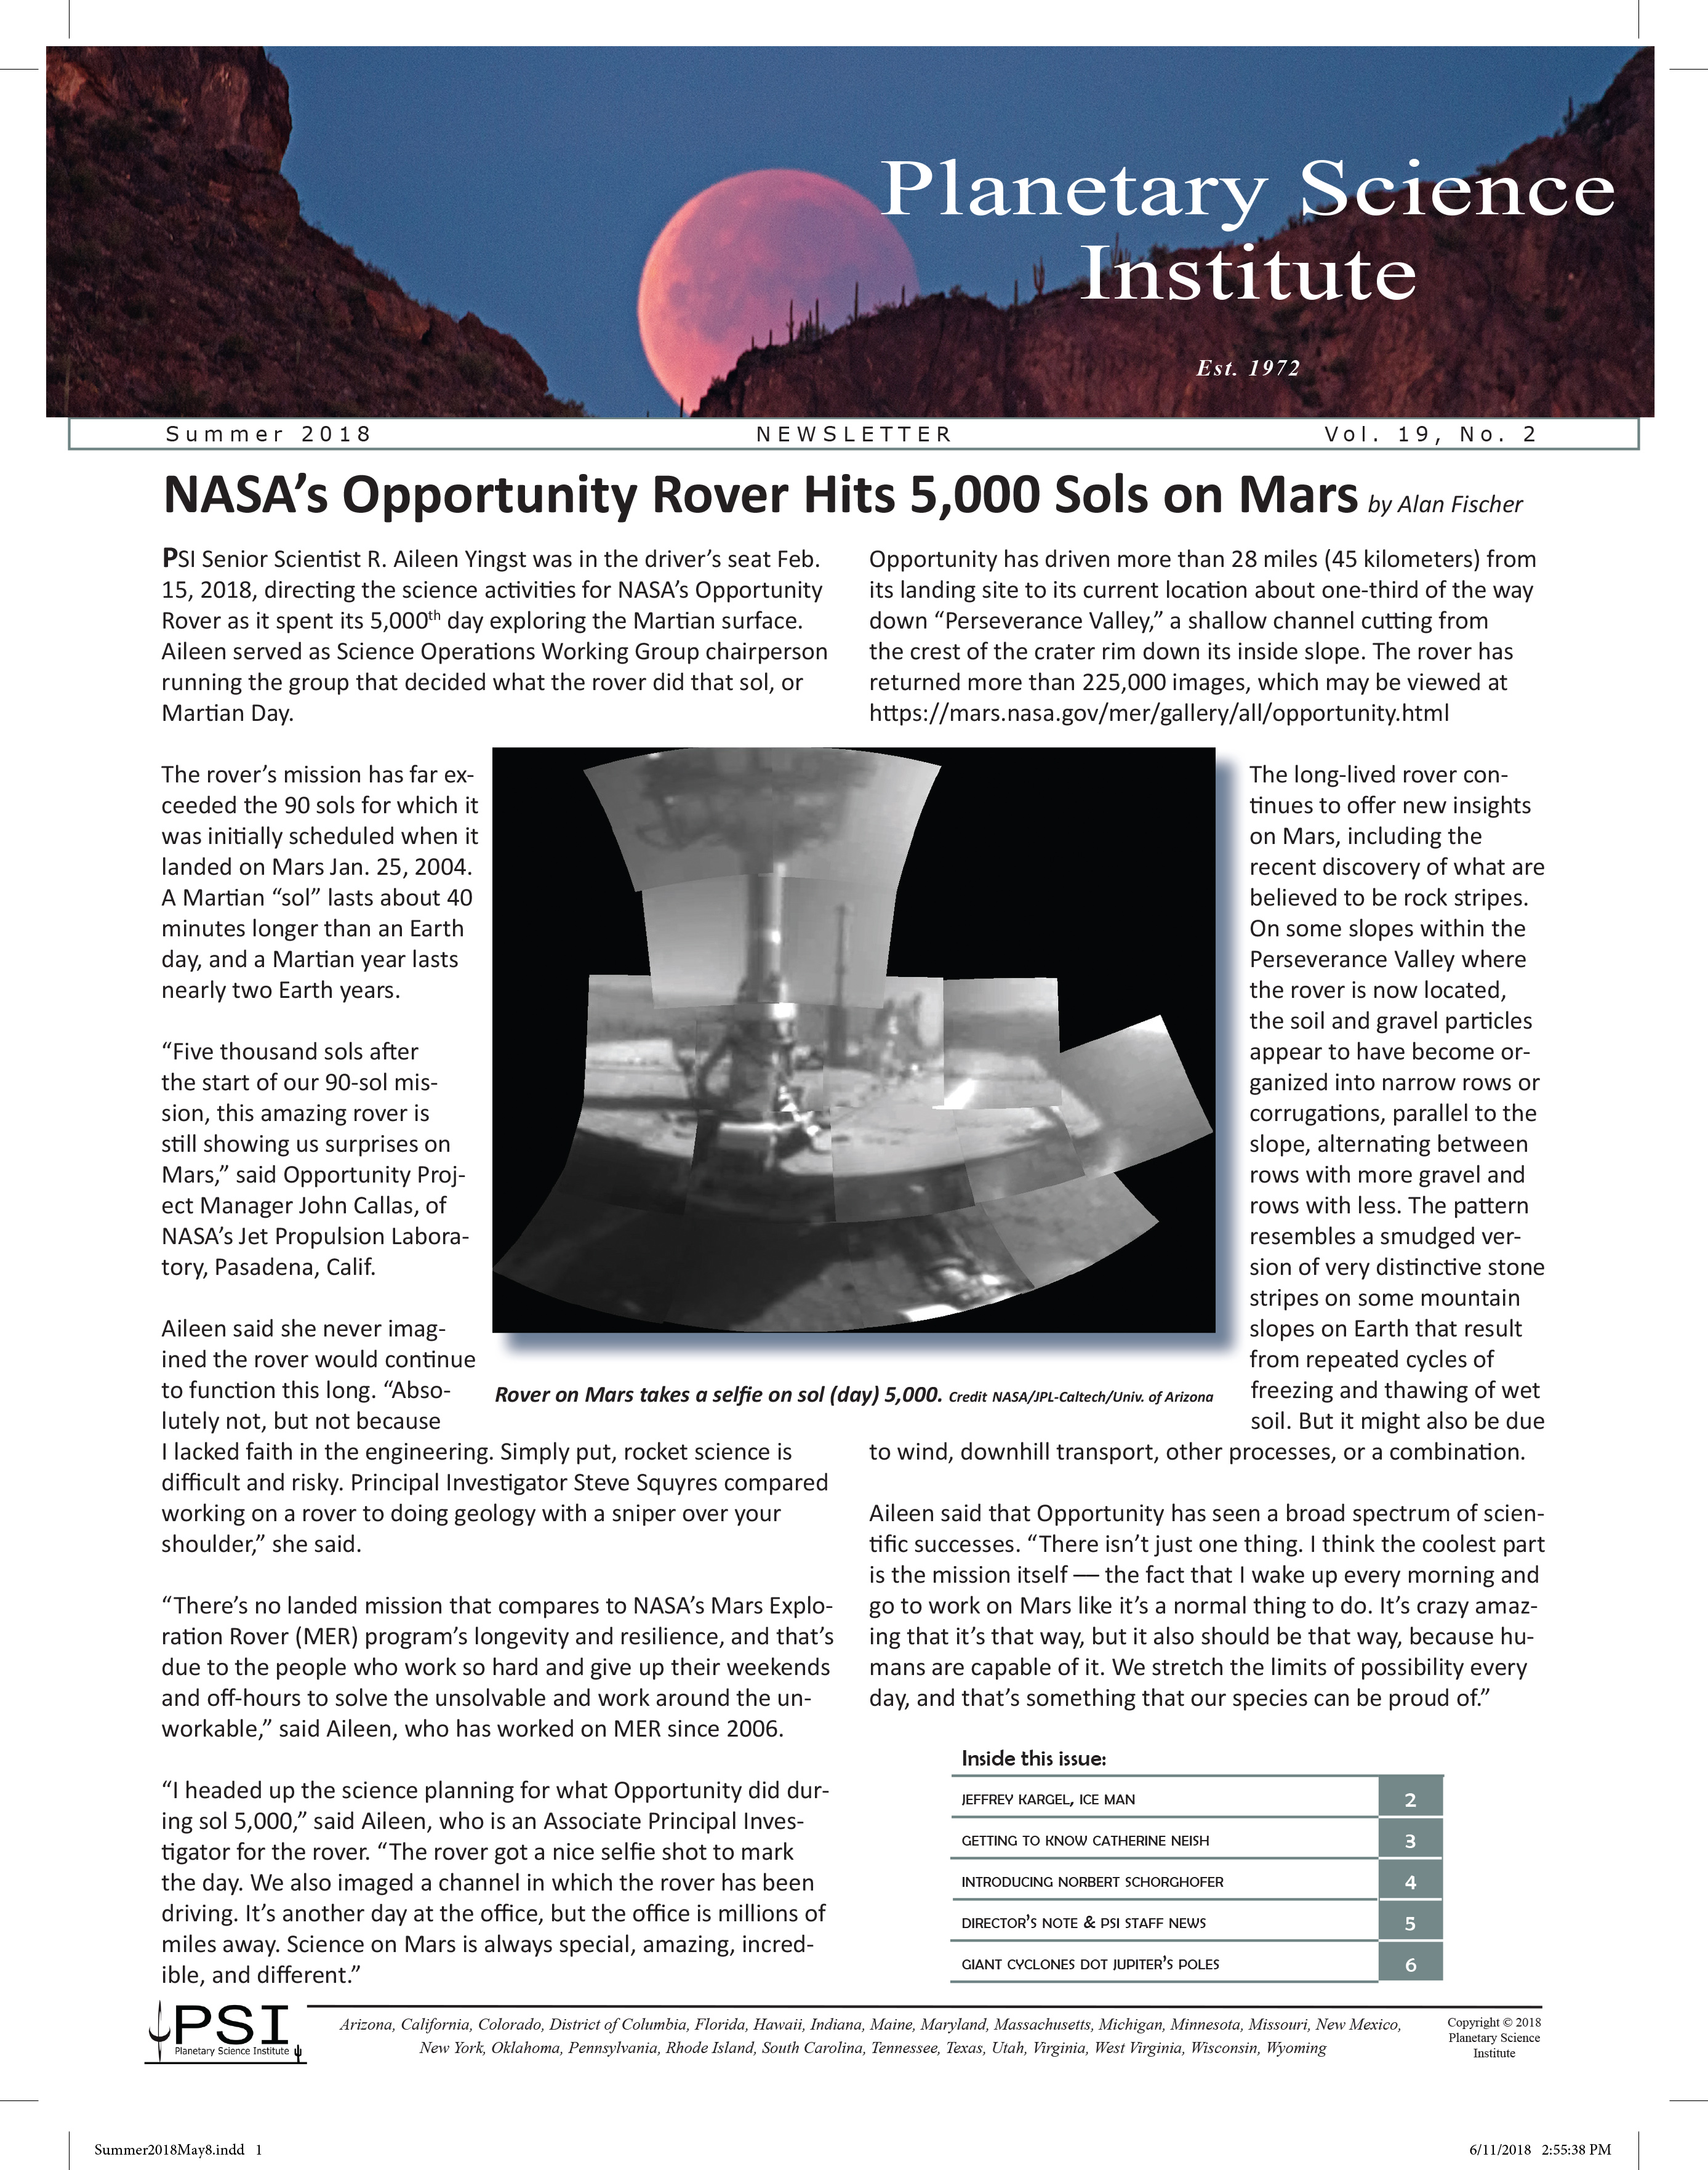 psi newsletter planetary science institute